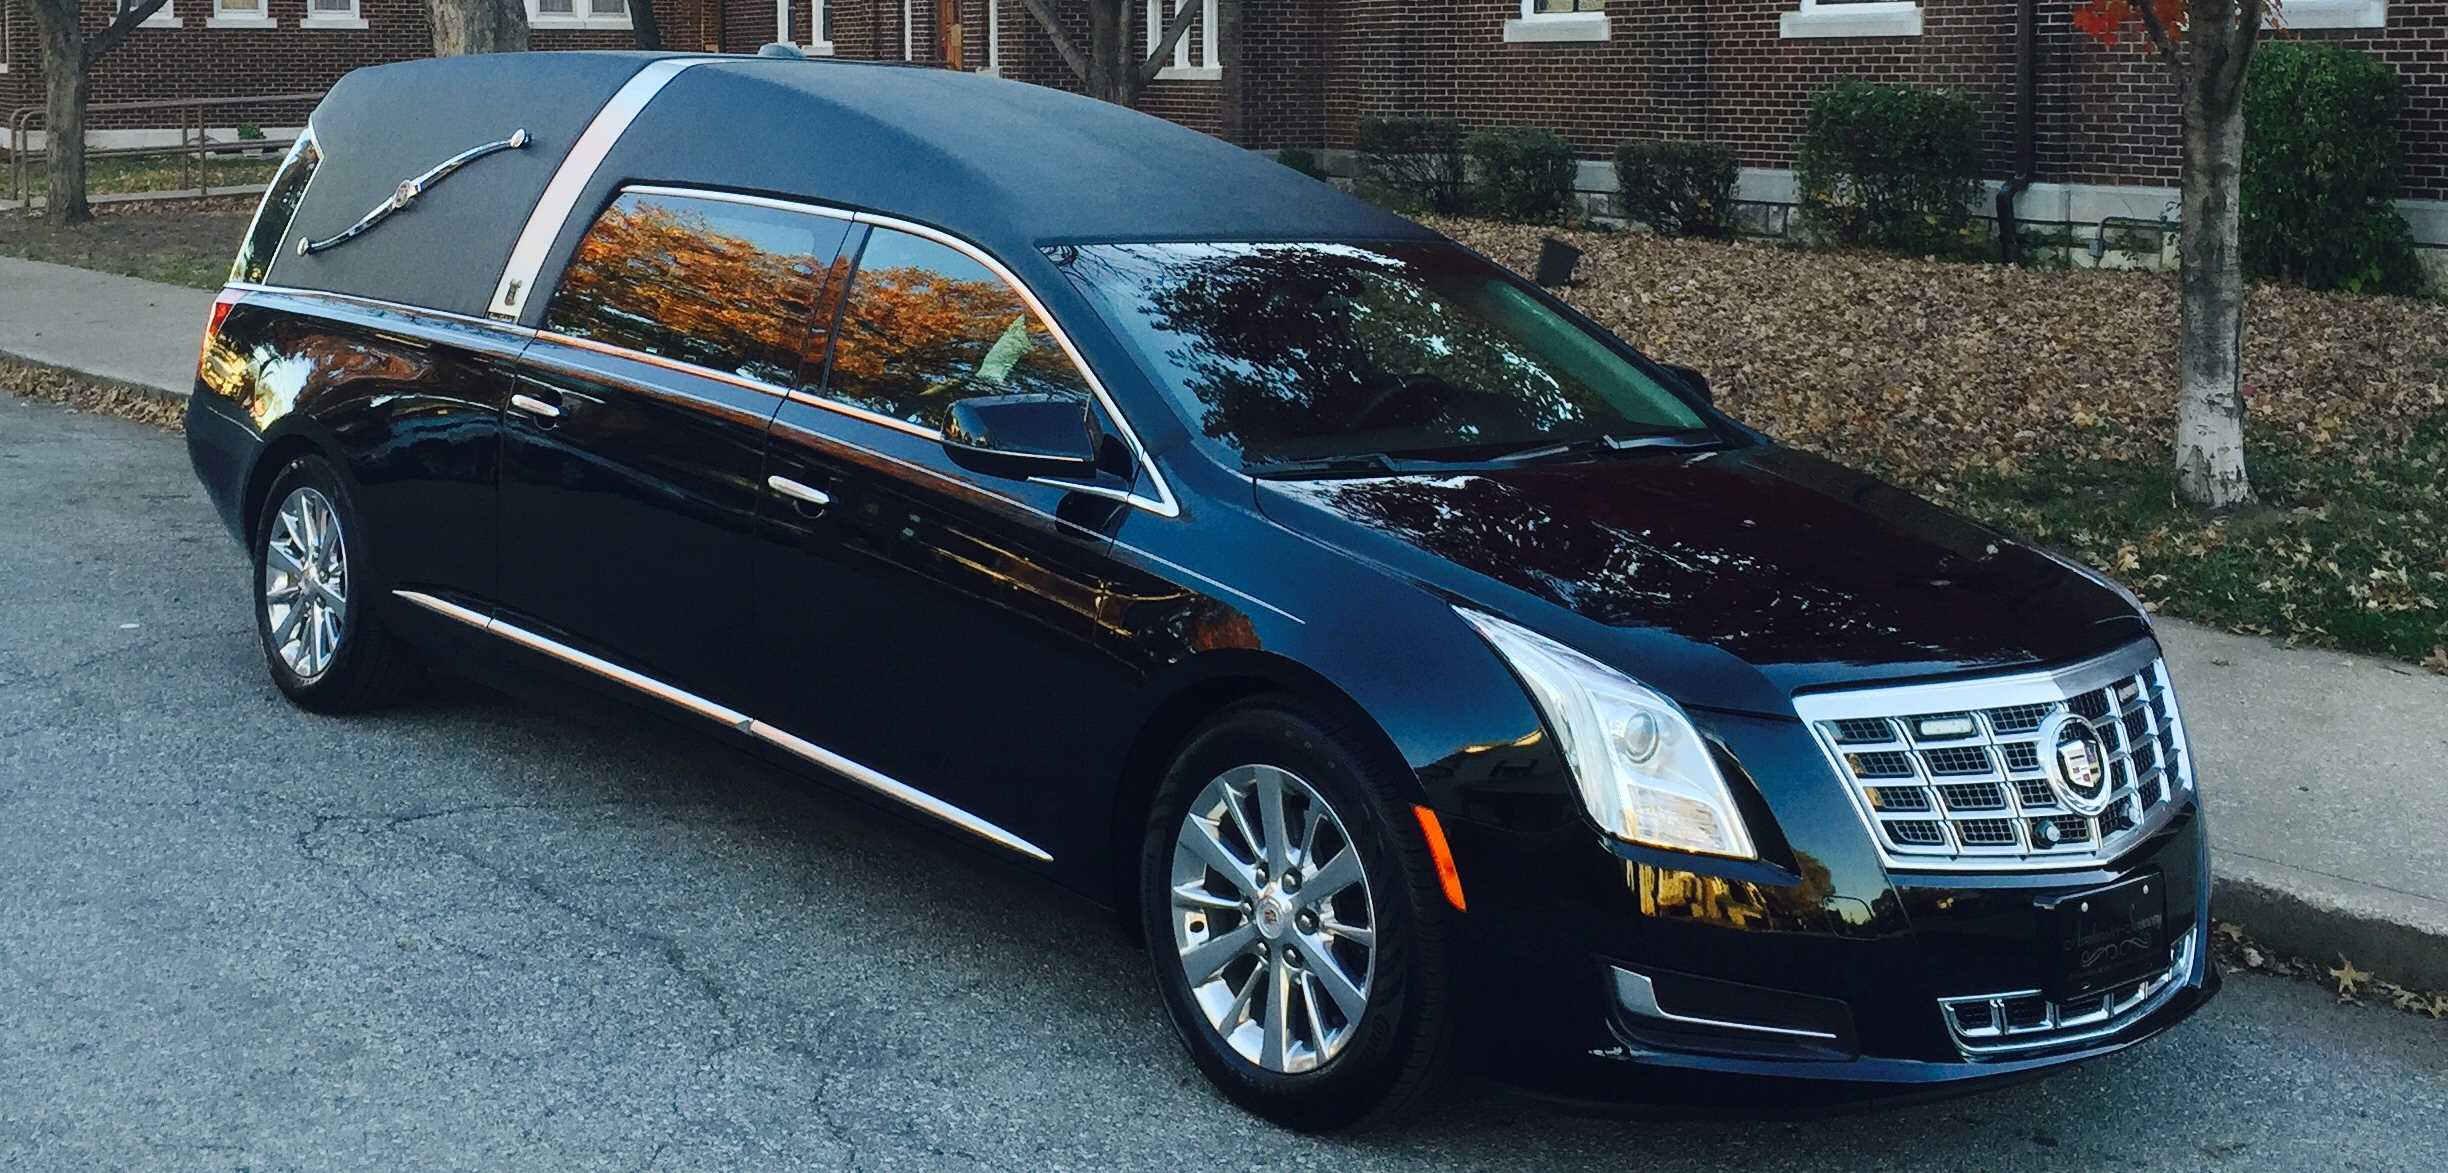 ... sale used hearse for sale used limos for sale used limousines for sale